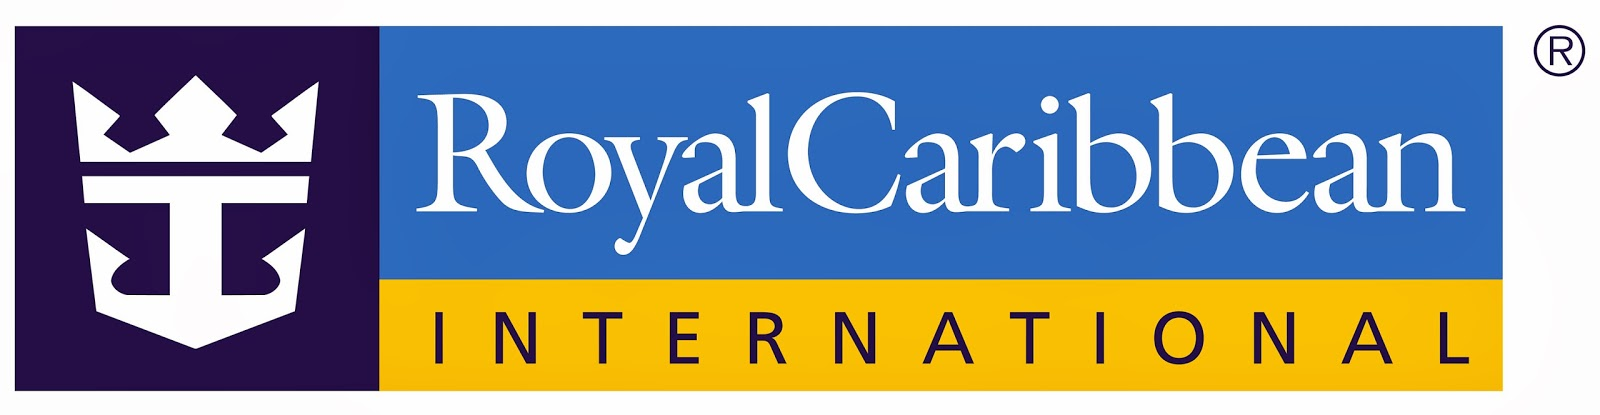 http://www.royalcaribbean.es/home.do